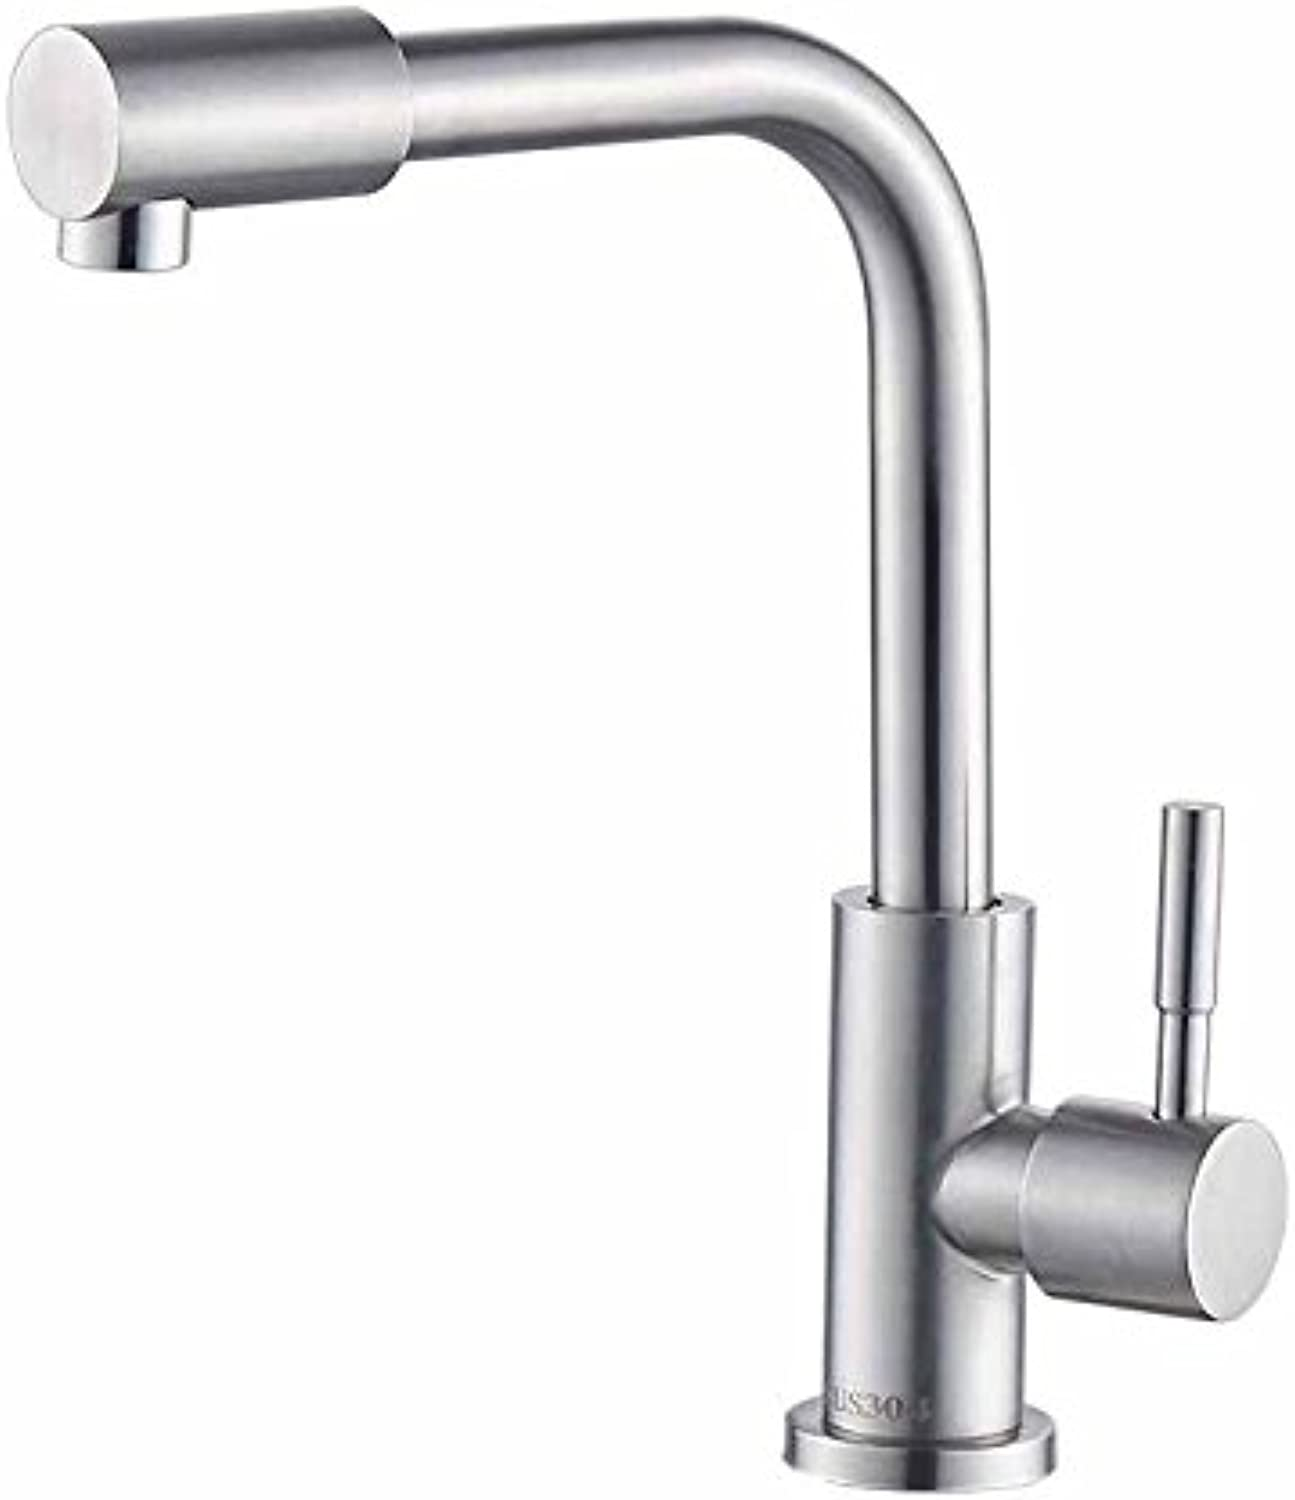 MulFaucet Faucet Water tap Taps Swivel Hoses Kitchen hot and Cold Copper redatable Household Single Handle Single Hole H